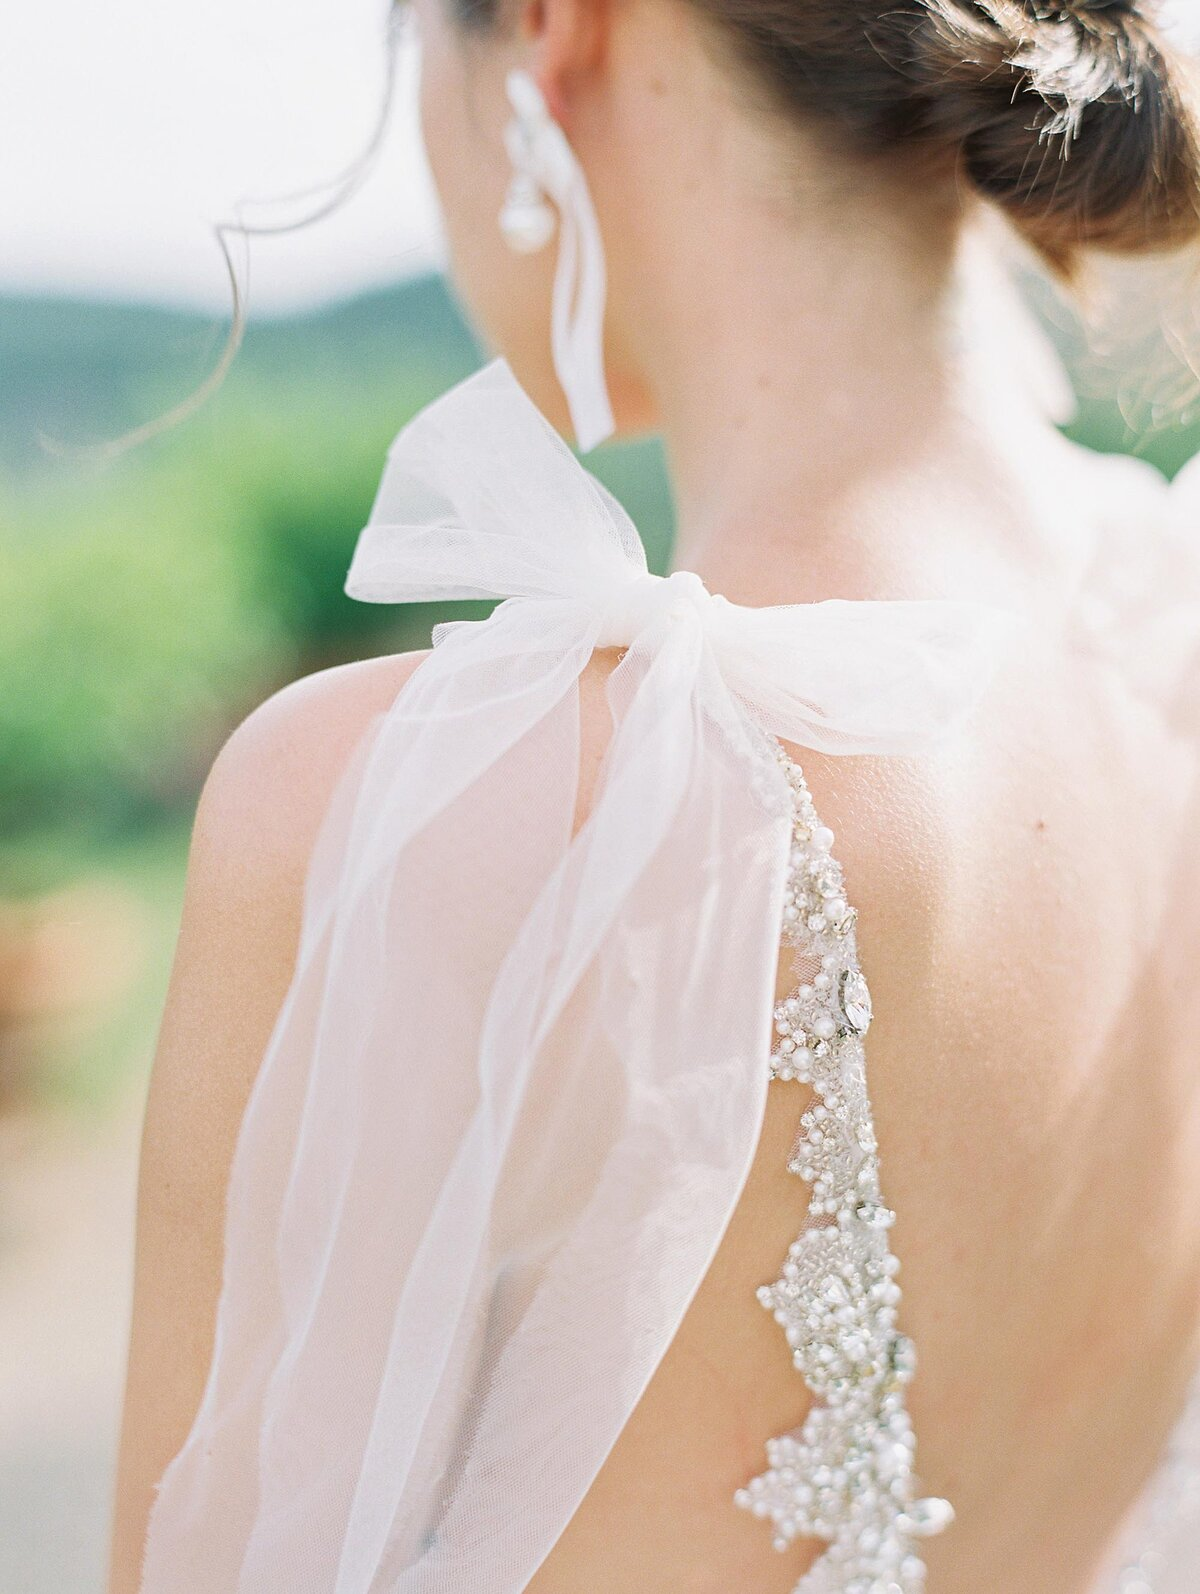 NKT-Events_Wedding-Inspiration-Editorial_Castello-di-Celsa_0440